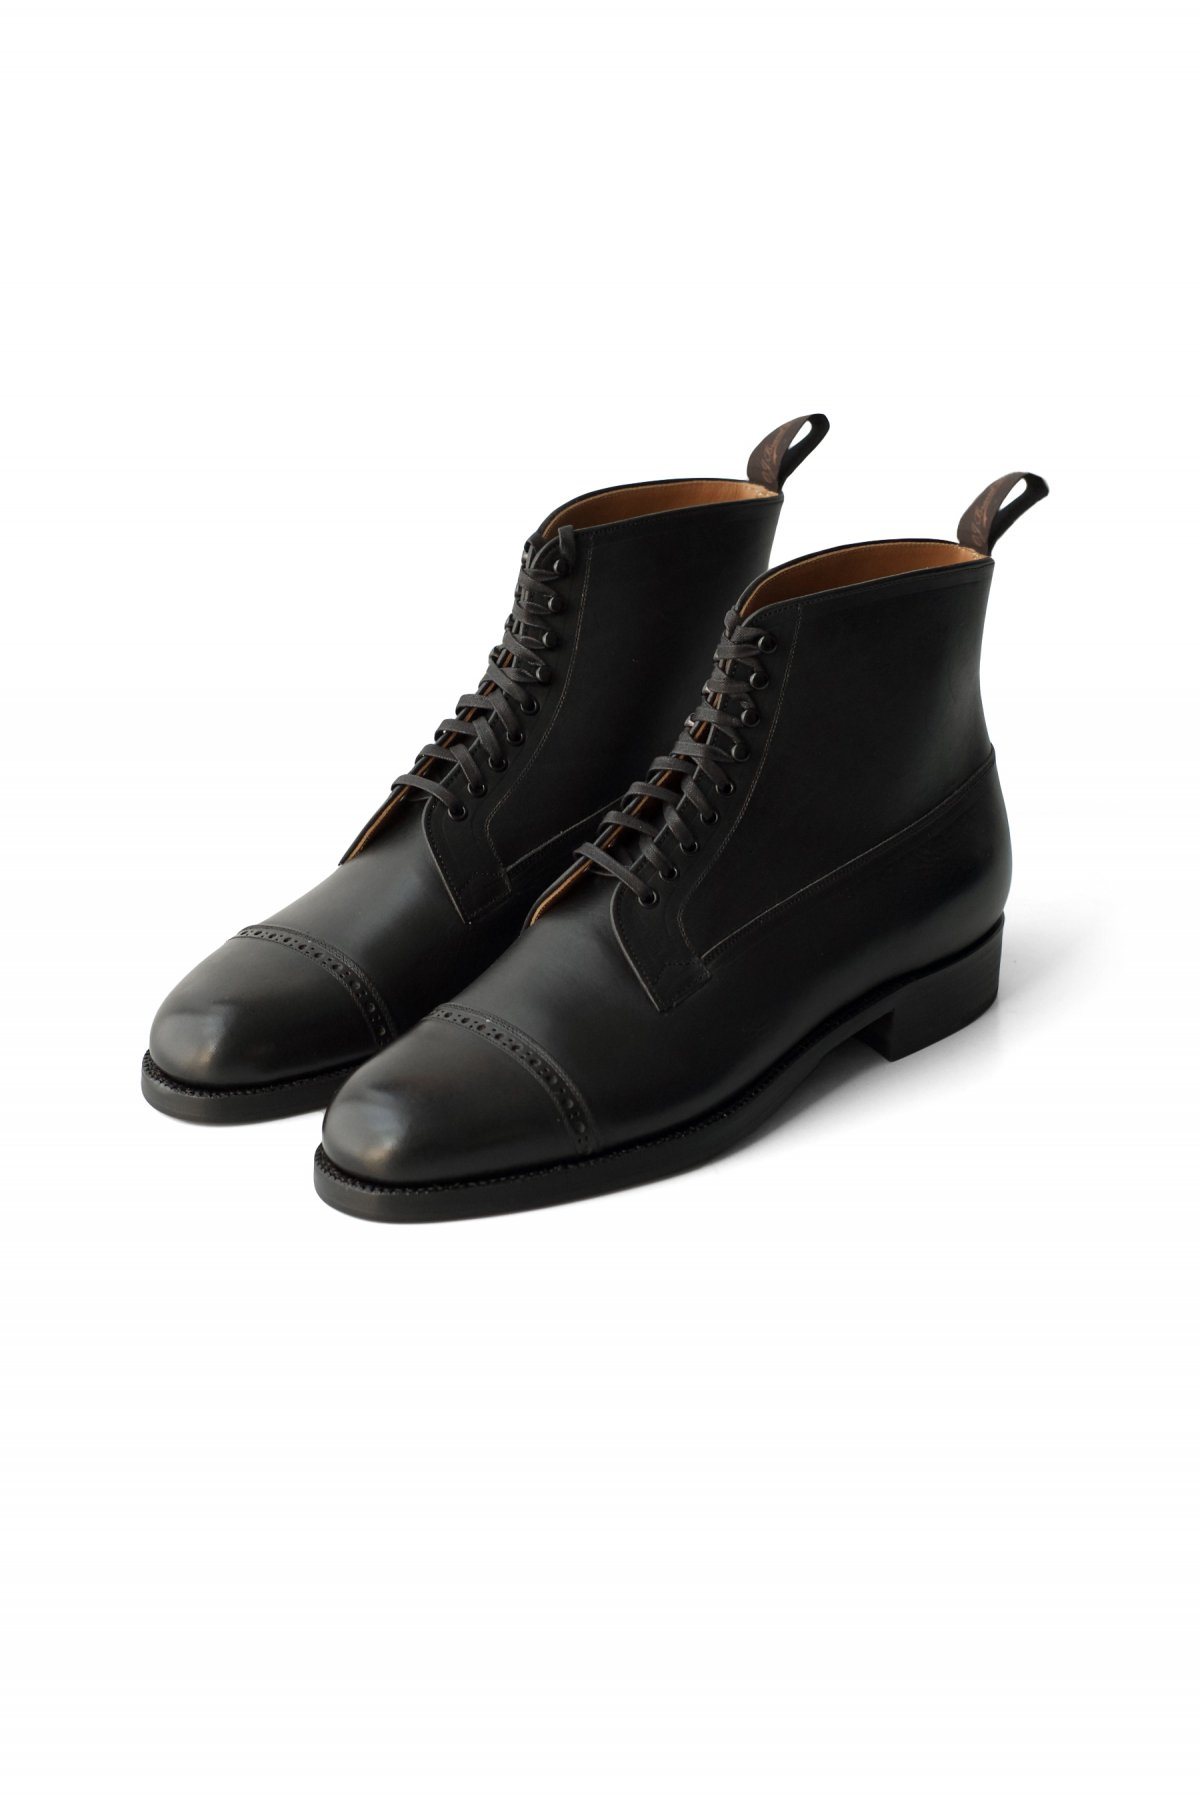 "OLD JOE - ""The Welder"" VACHETTA LEATHER CAP TOE BOOTS BLACK PRICE 88,000 tax-in"